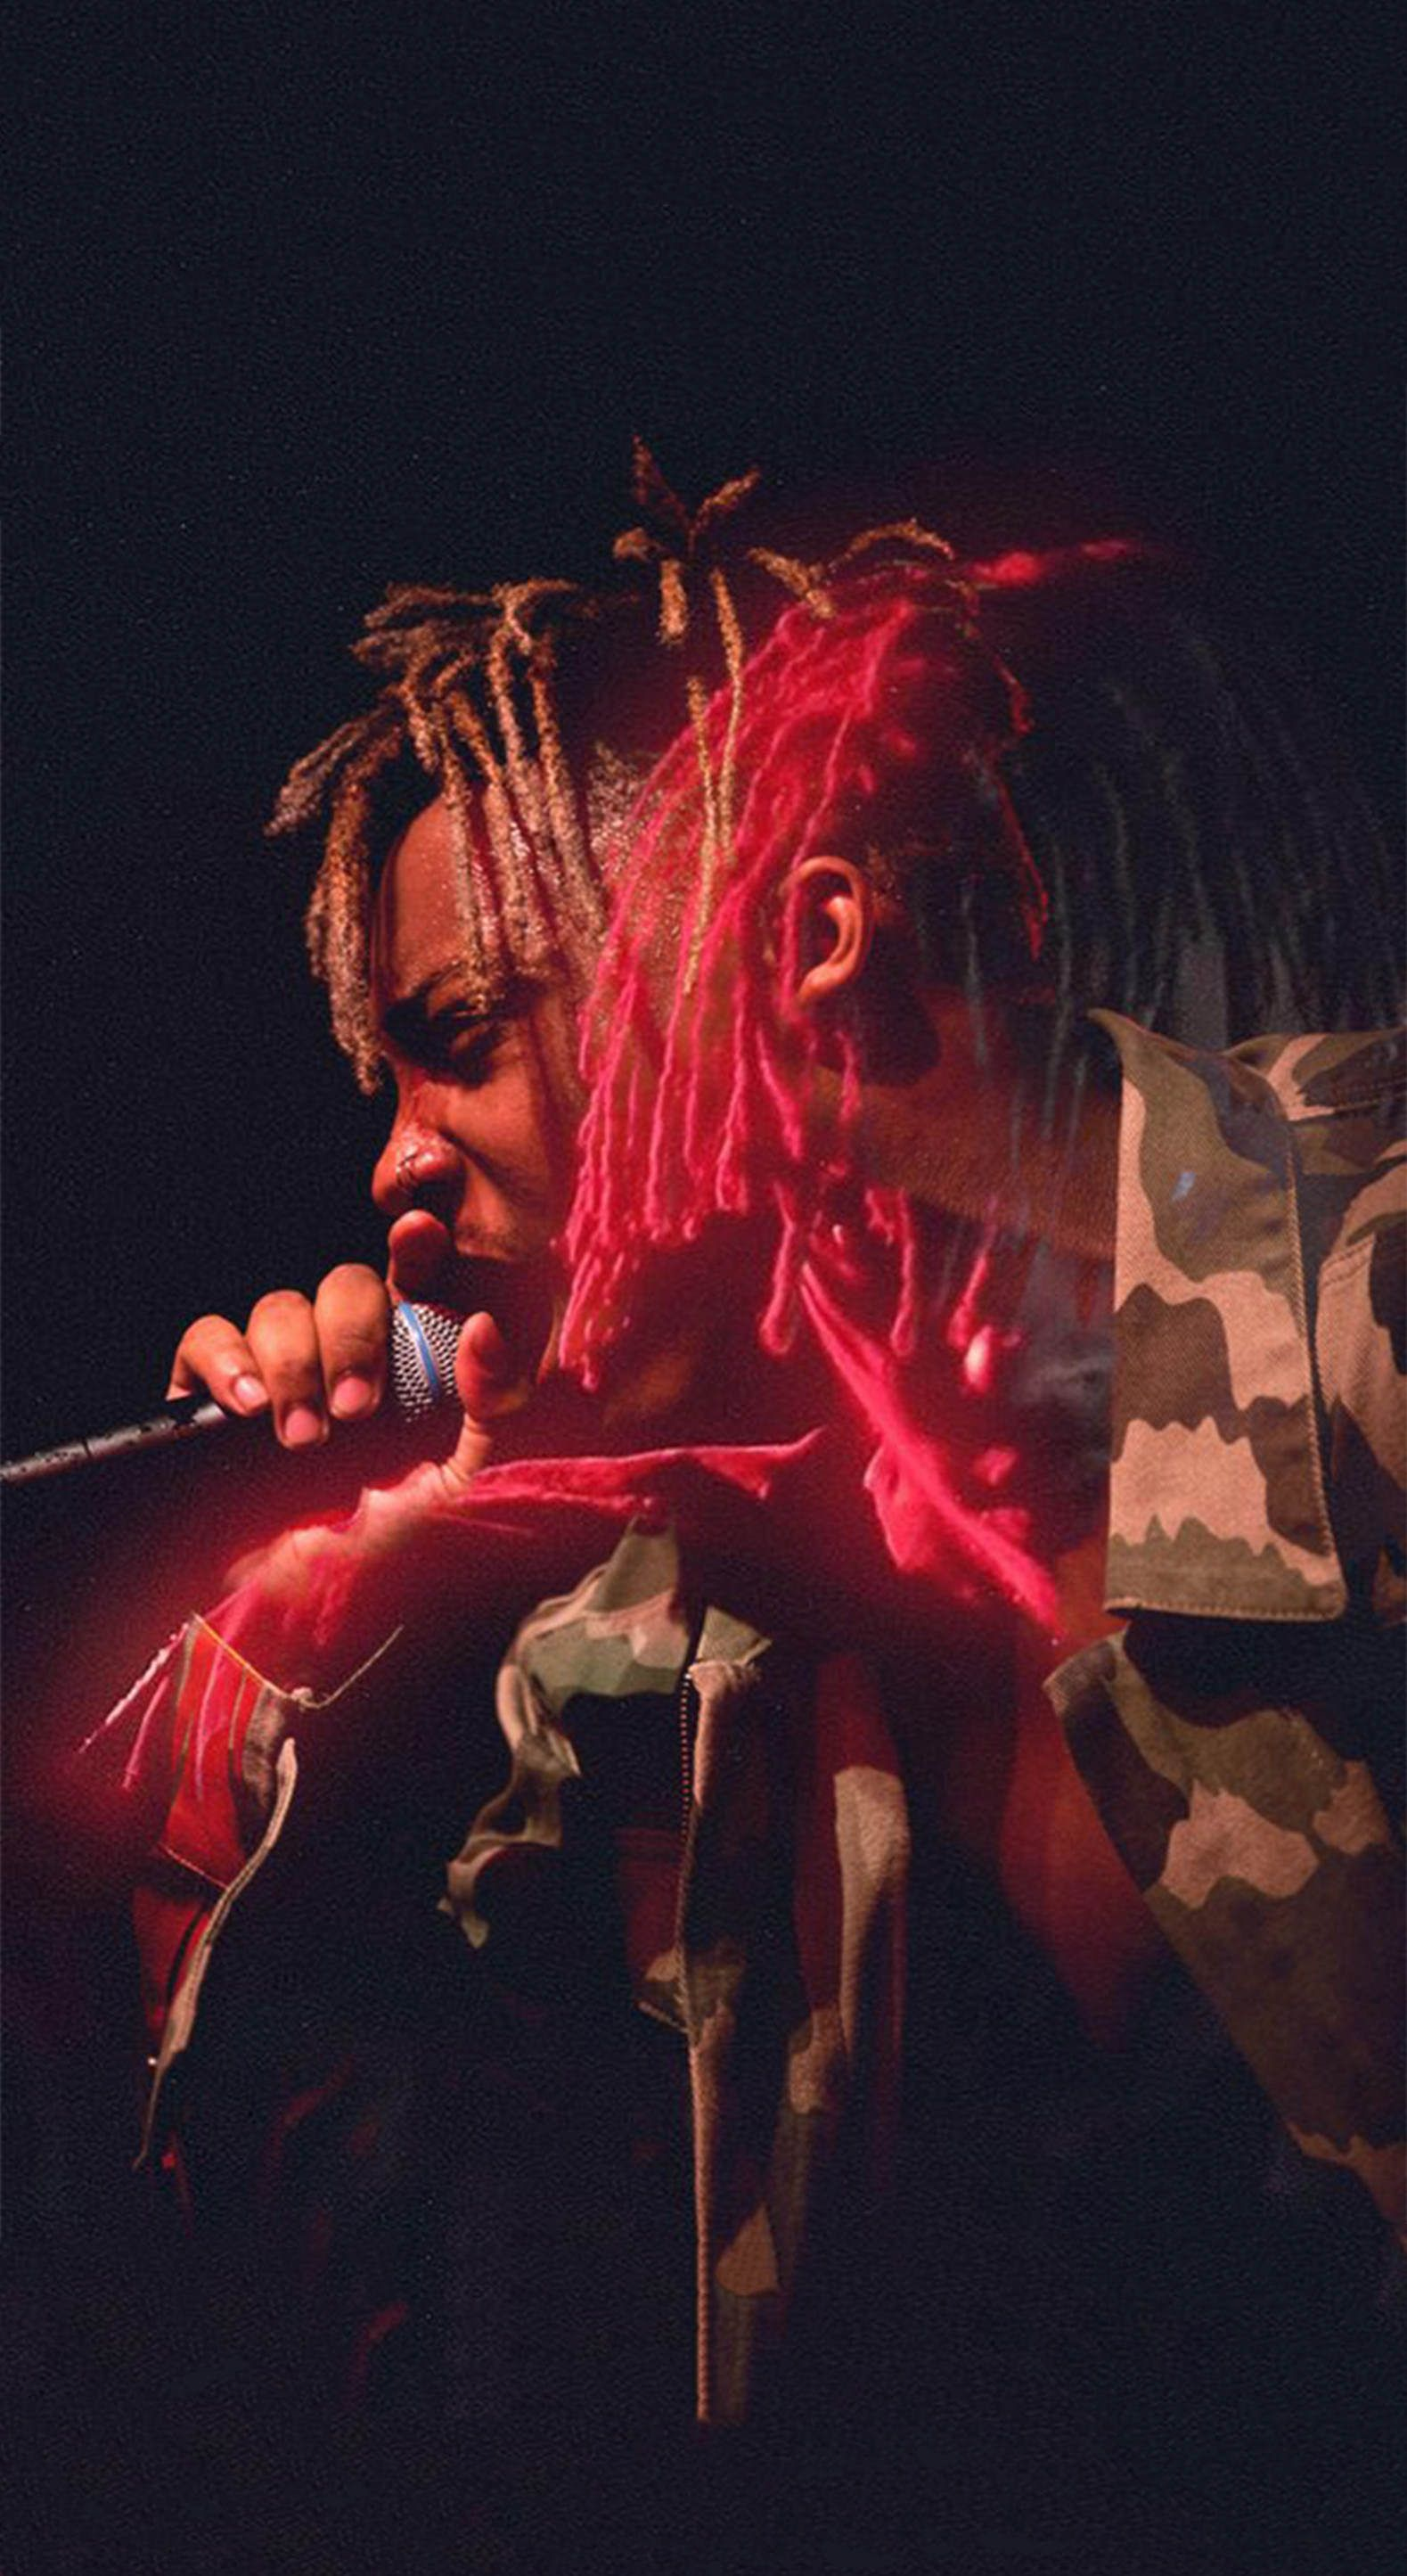 Juice Wrld Iphone Wallpapers Top Free Juice Wrld Iphone Backgrounds Wallpaperaccess